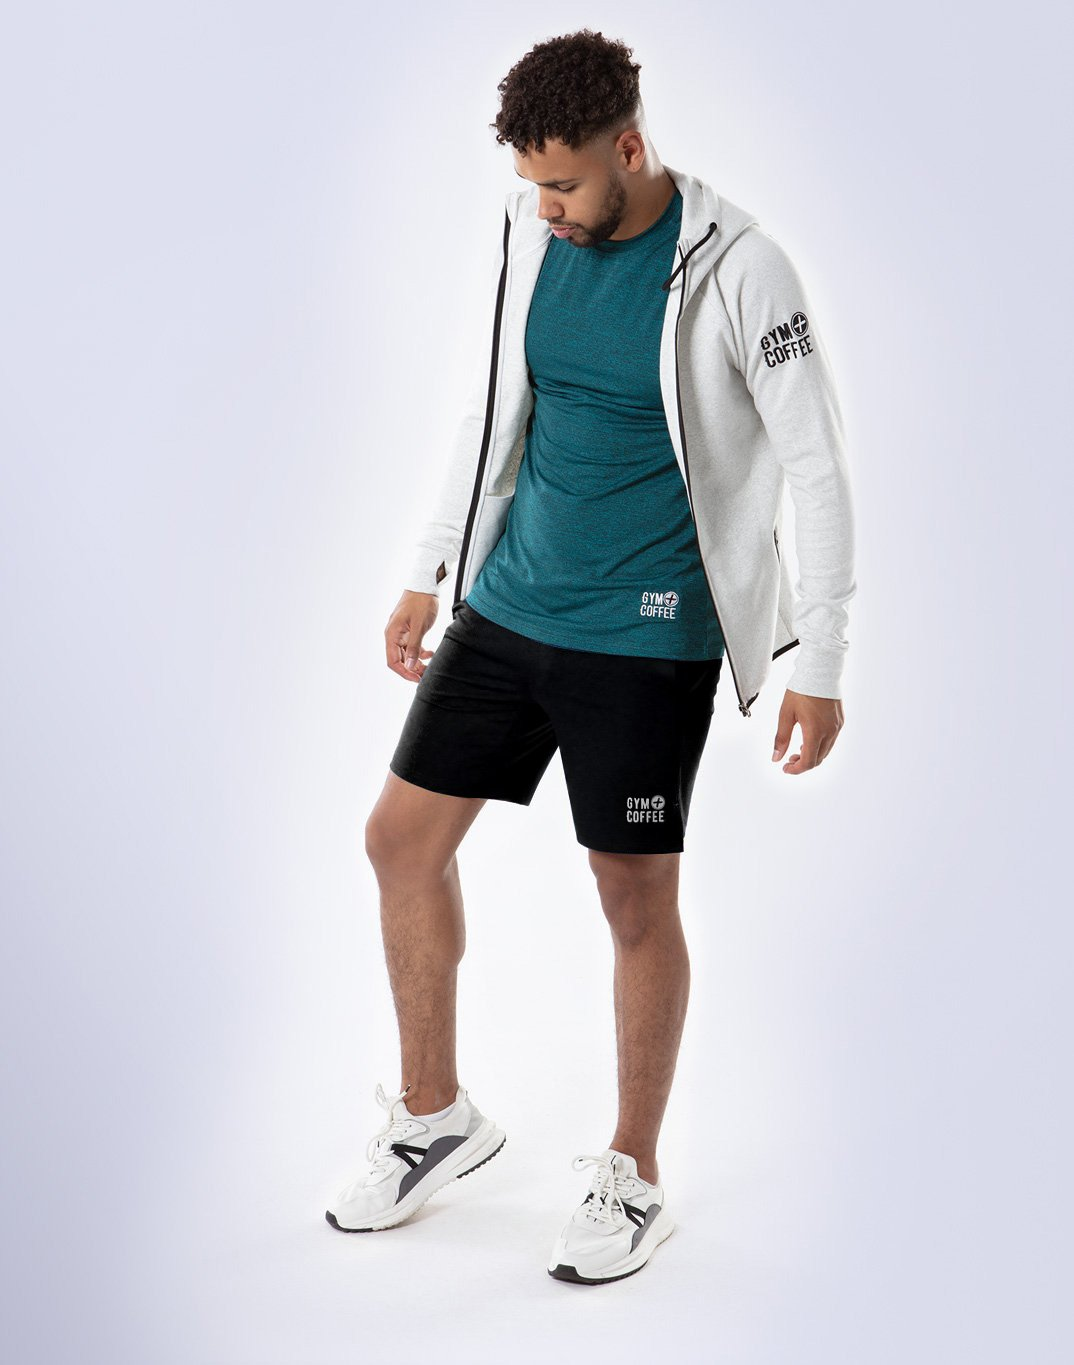 Gym Plus Coffee Shorts Baseline Court Shorts in Black Designed in Ireland